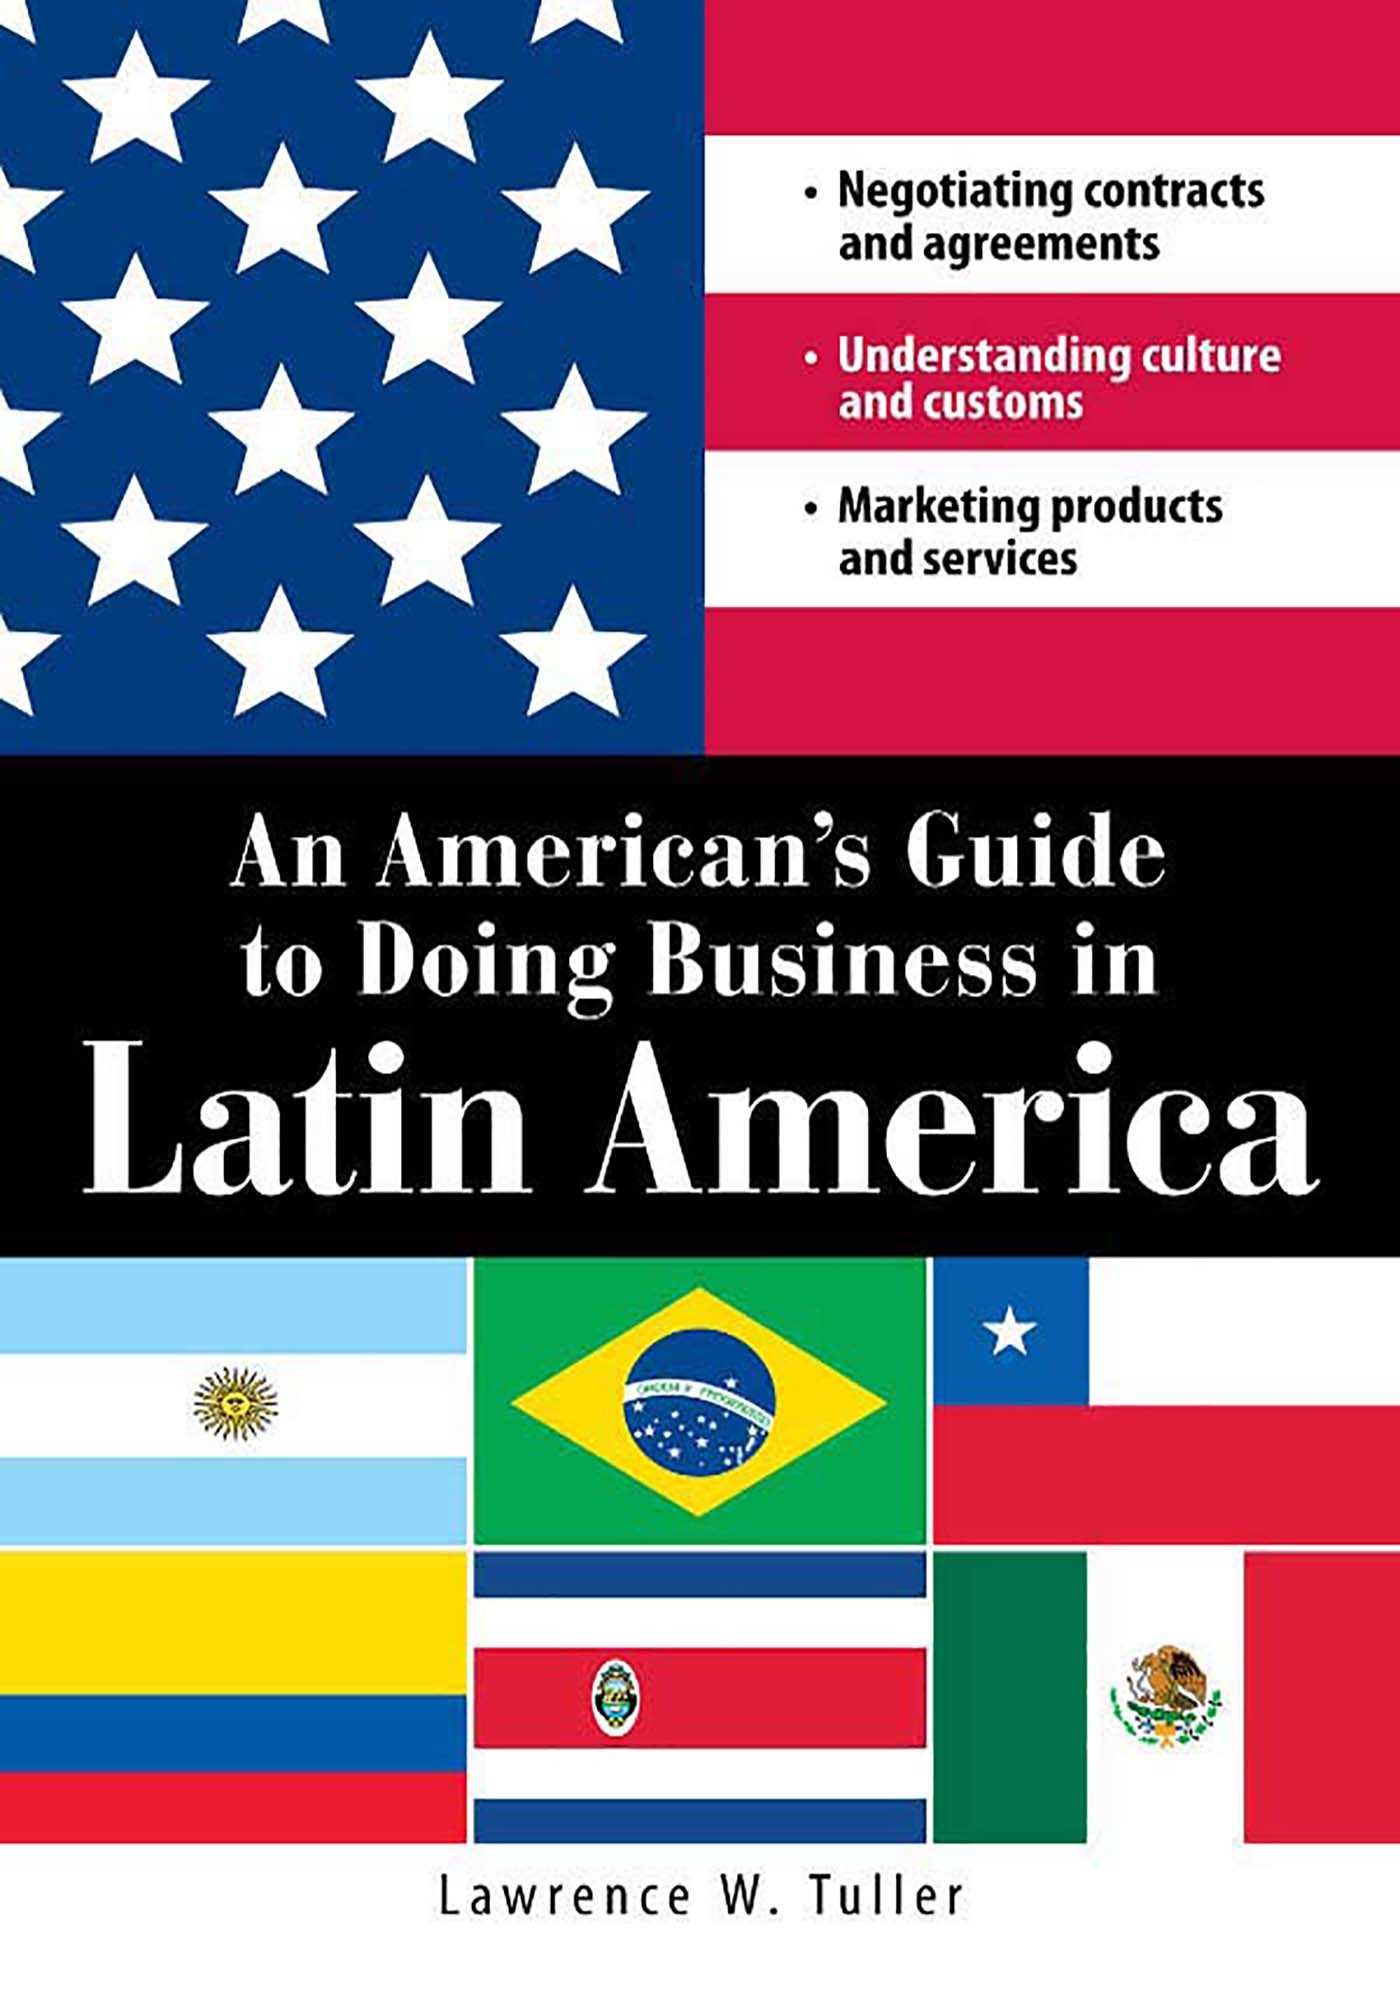 An American's Guide to Doing Business in Latin America eBook